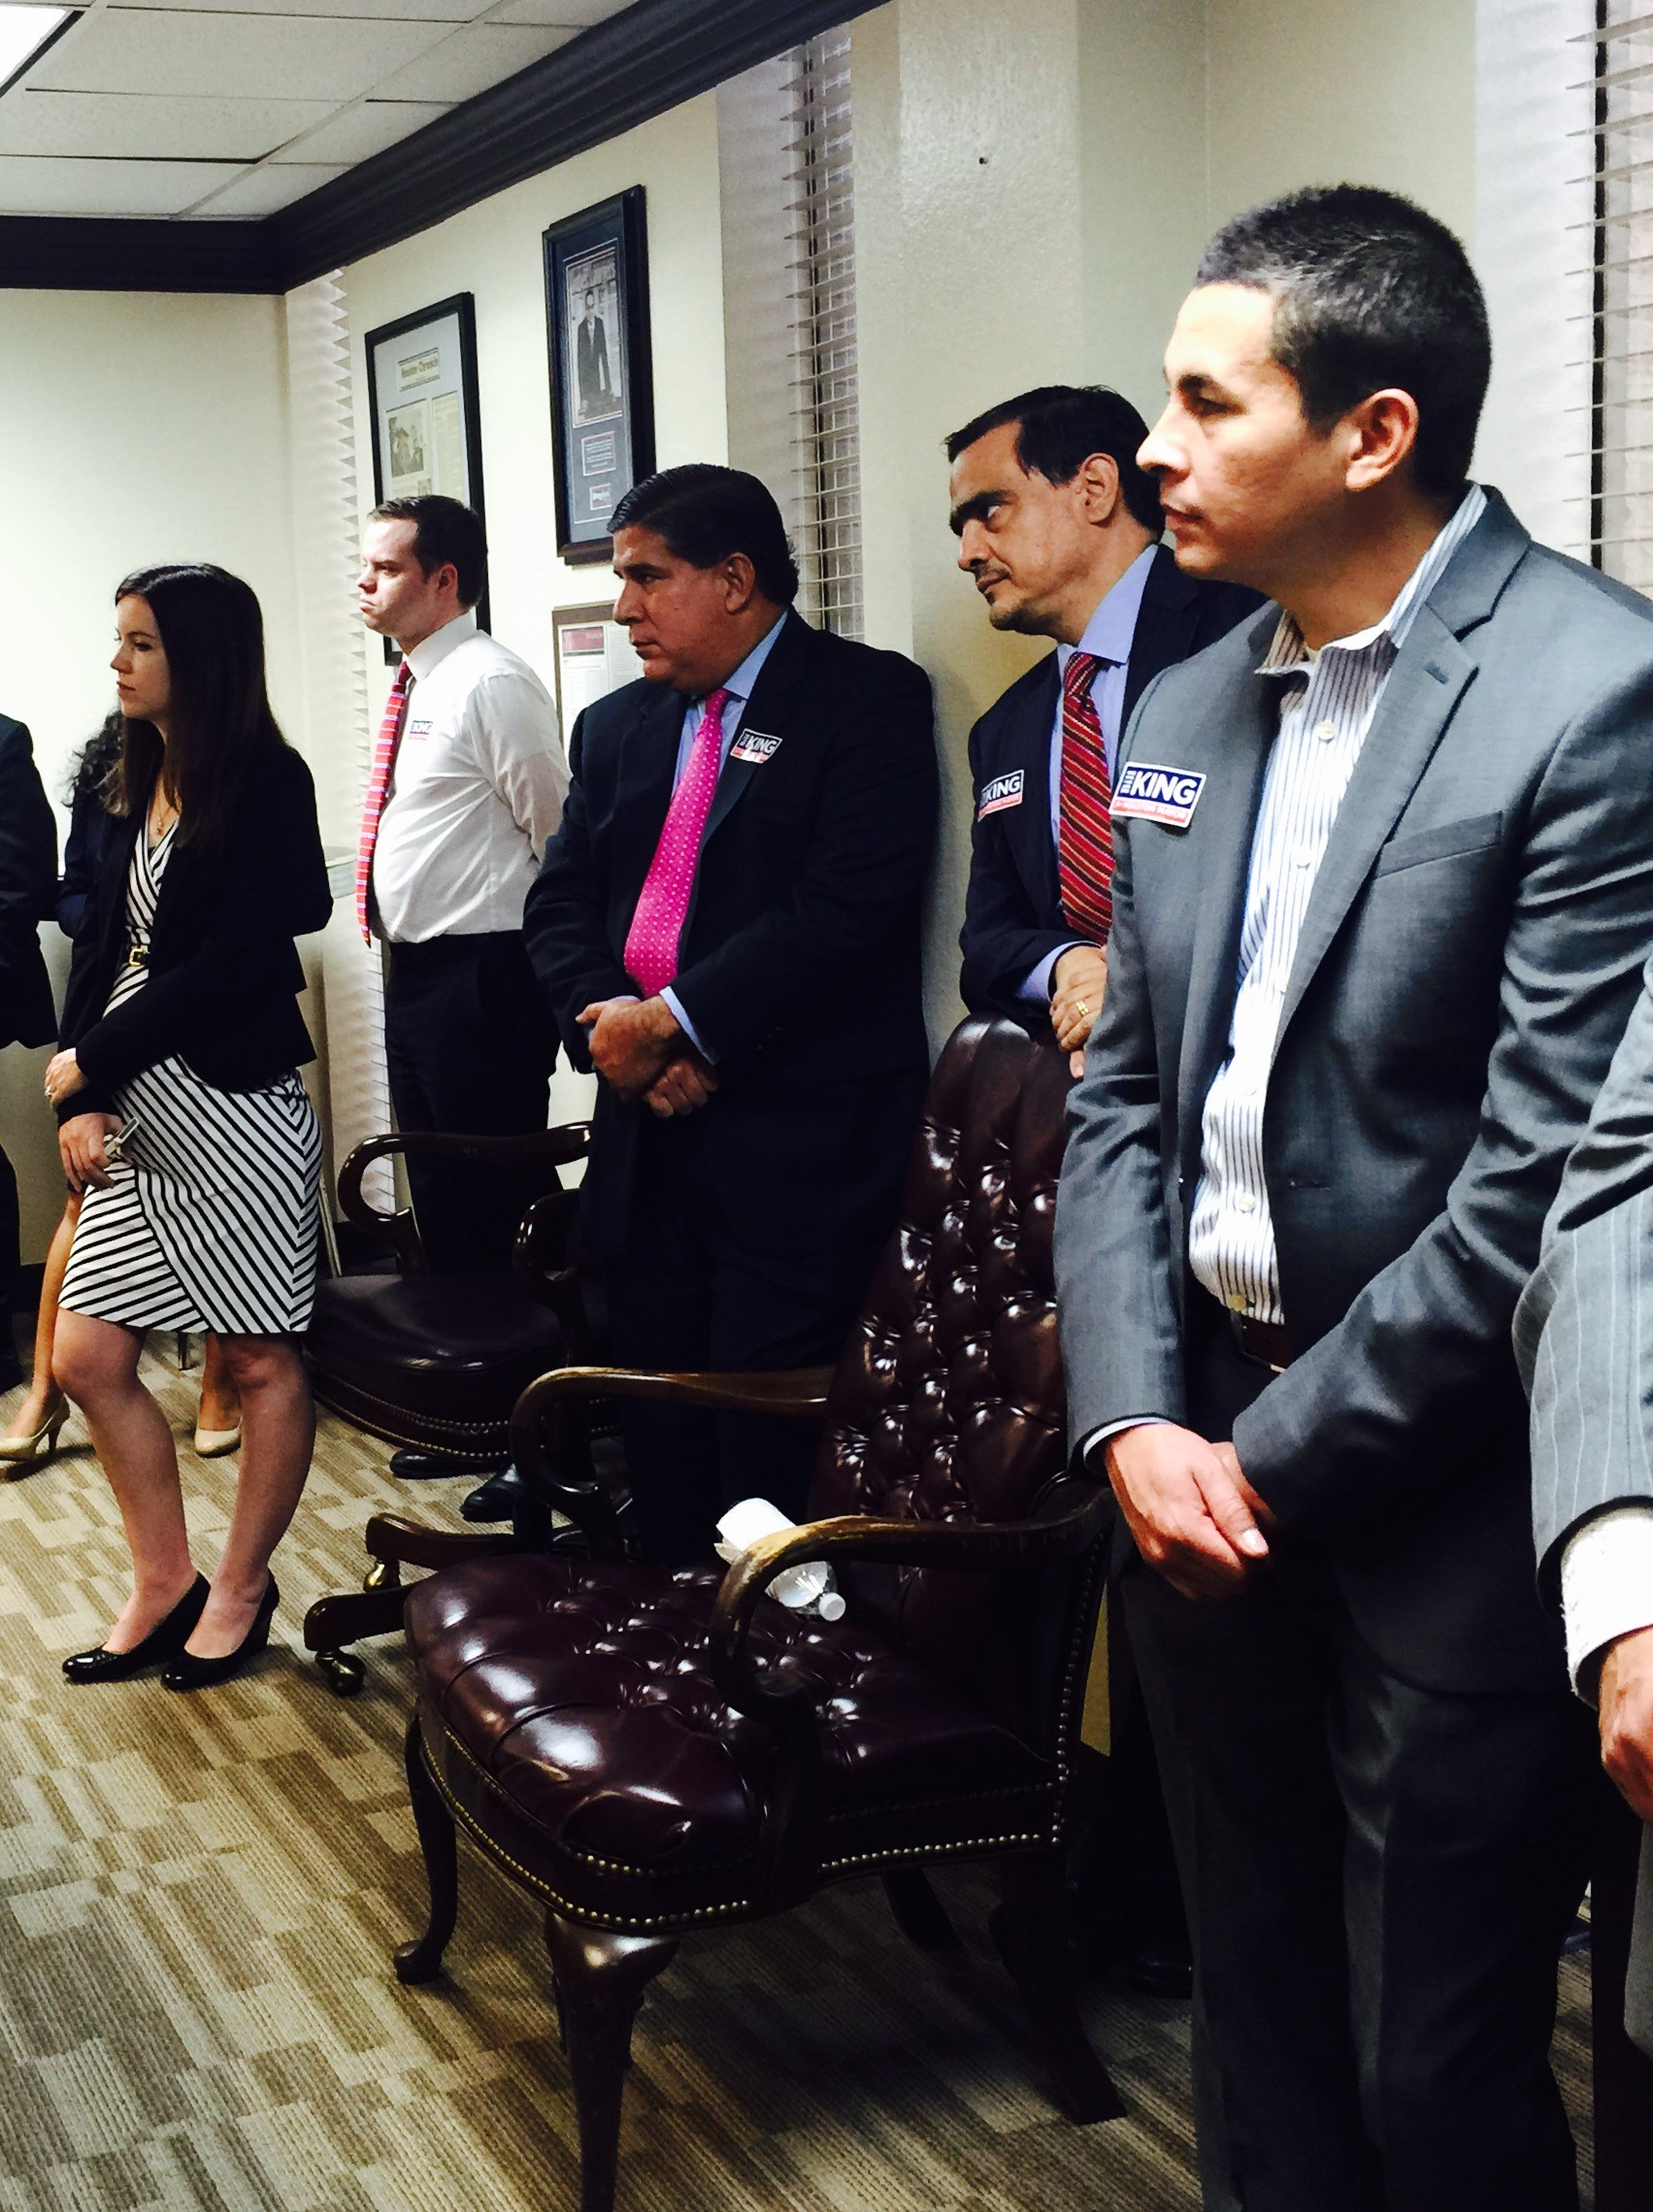 Melissa Rascon @ Fundraiser for Houston Mayoral Candidate Bill King